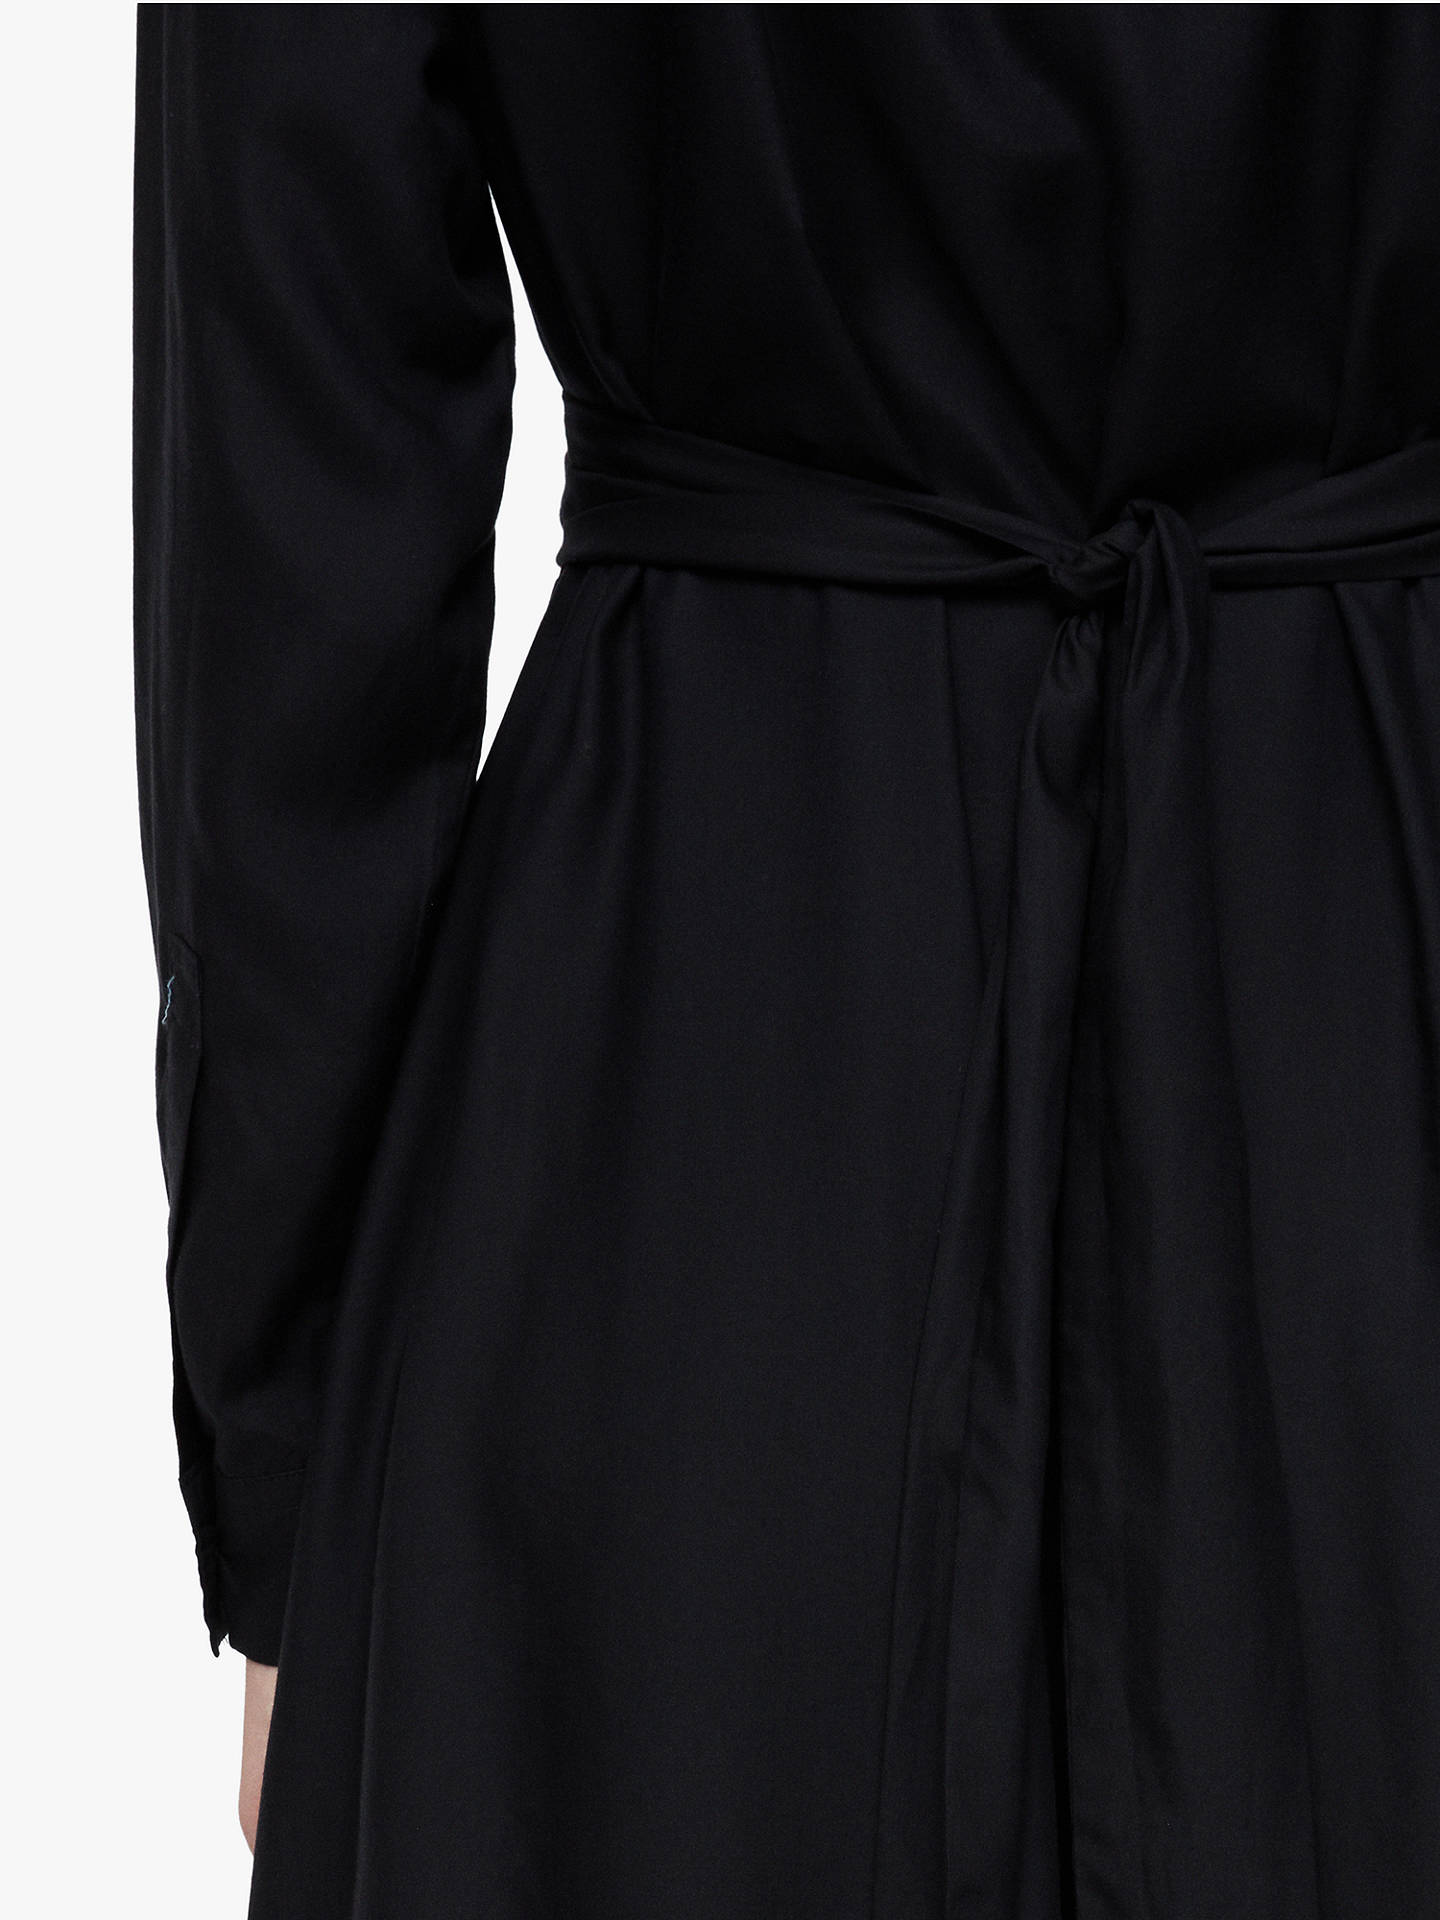 BuyAllSaints Flyn Dress, Black, M Online at johnlewis.com